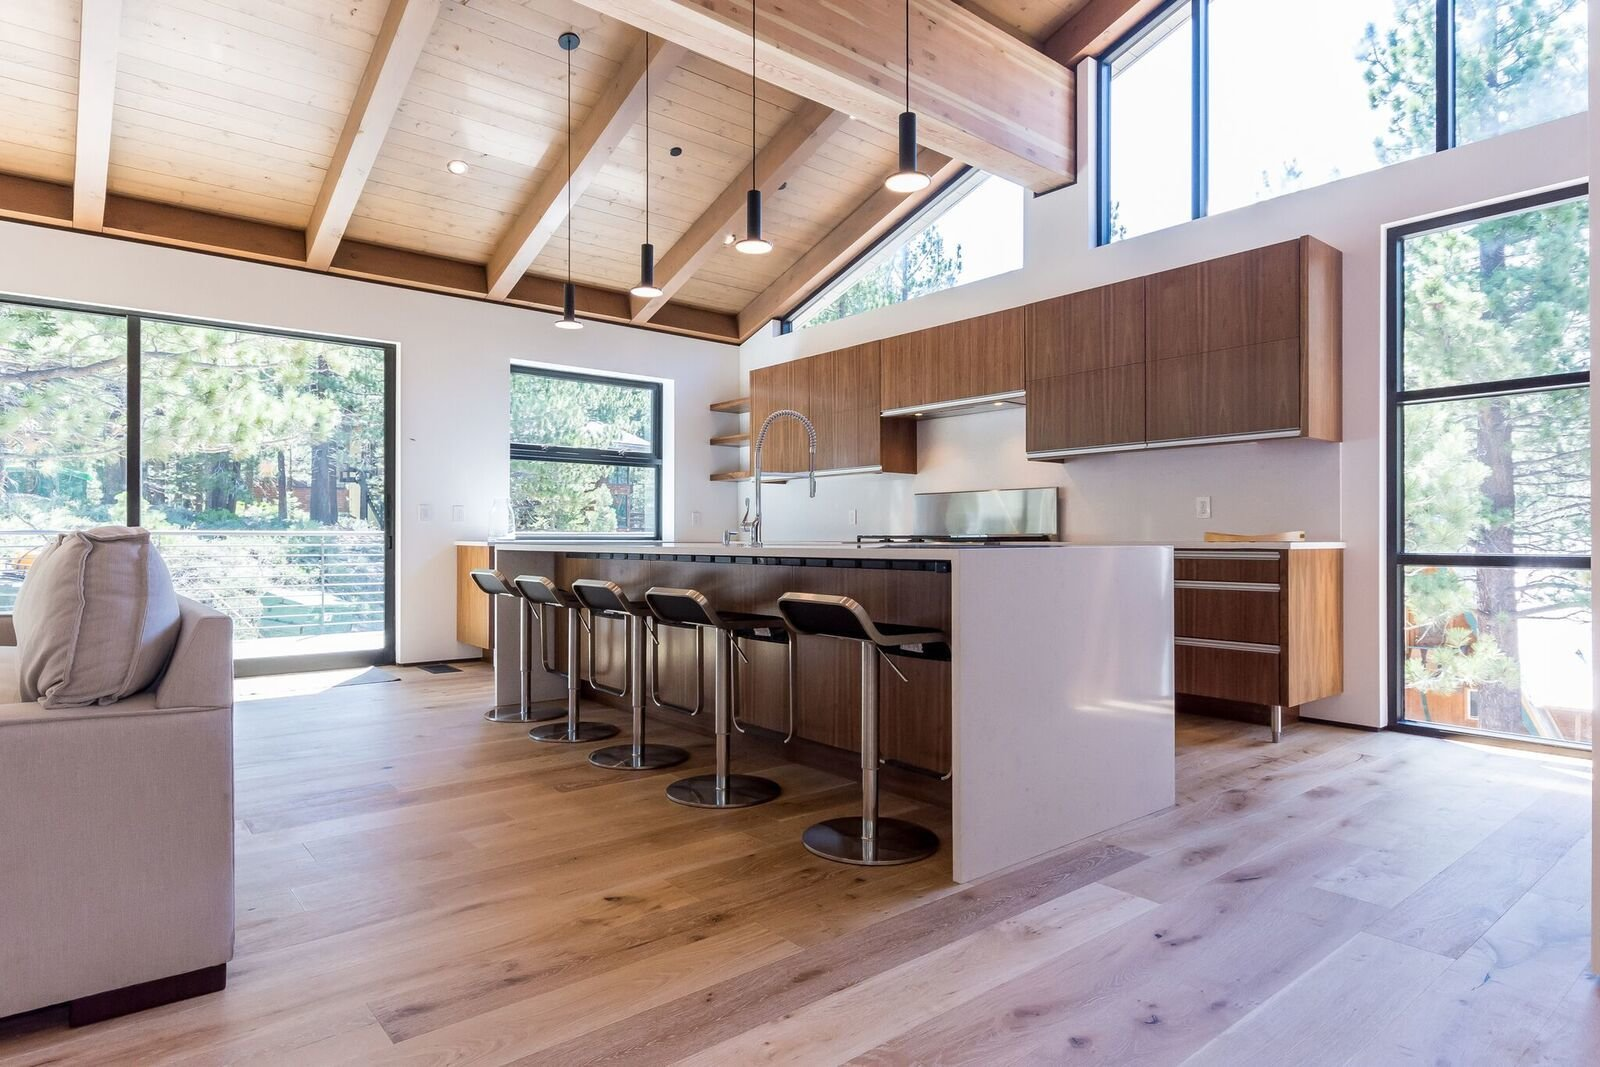 Kitchen, Engineered Quartz Counter, Quartzite Counter, Wood Cabinet, Medium Hardwood Floor, Ceiling Lighting, Pendant Lighting, Range, and Undermount Sink Seating for 5 at the large island counter  Mammoth Modern House 1